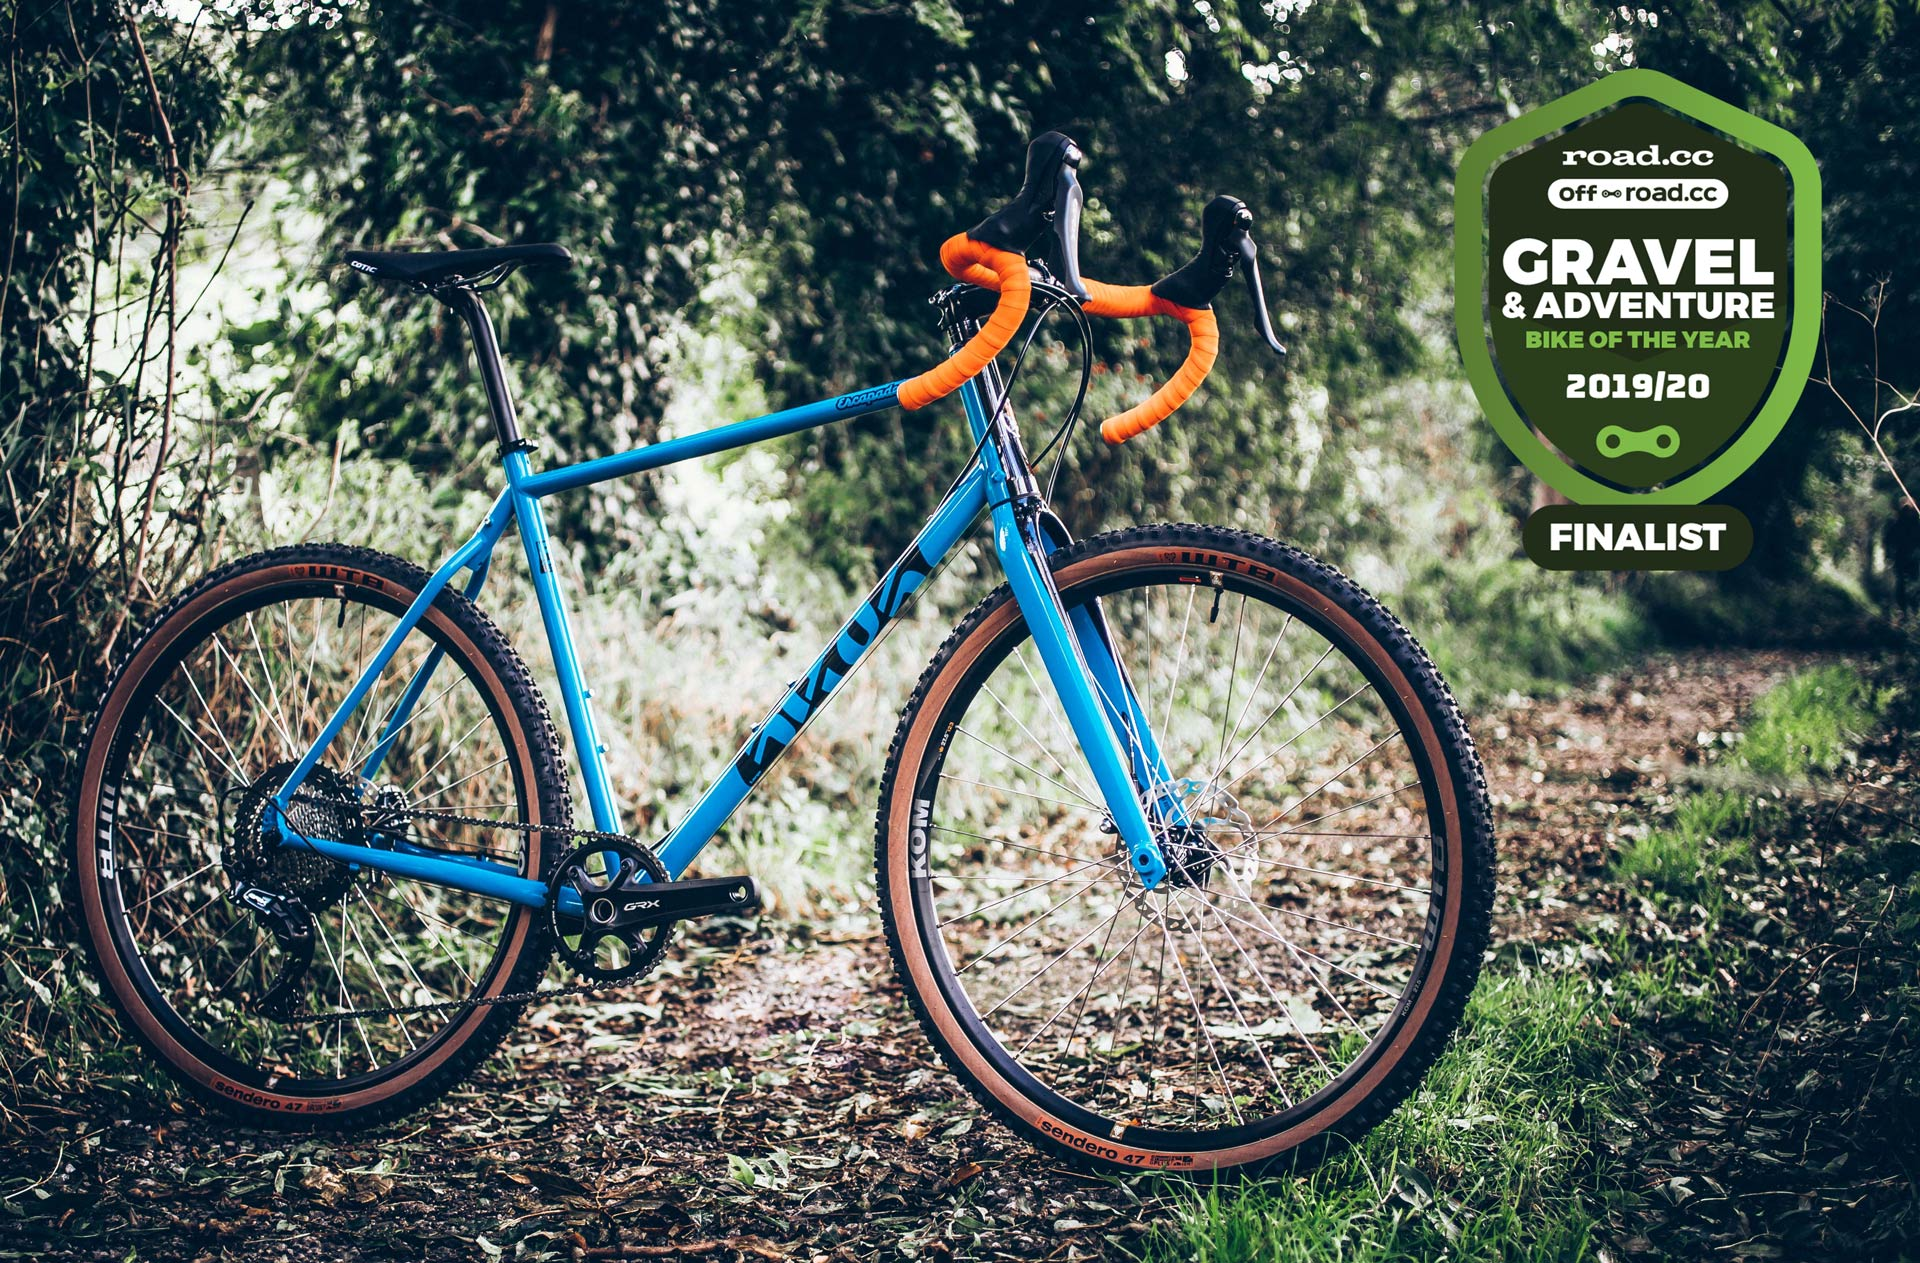 cotic escapade, steel gravel bike, gravel bike, adventure bike, gravel bike of the year, steel is real, bikepacking